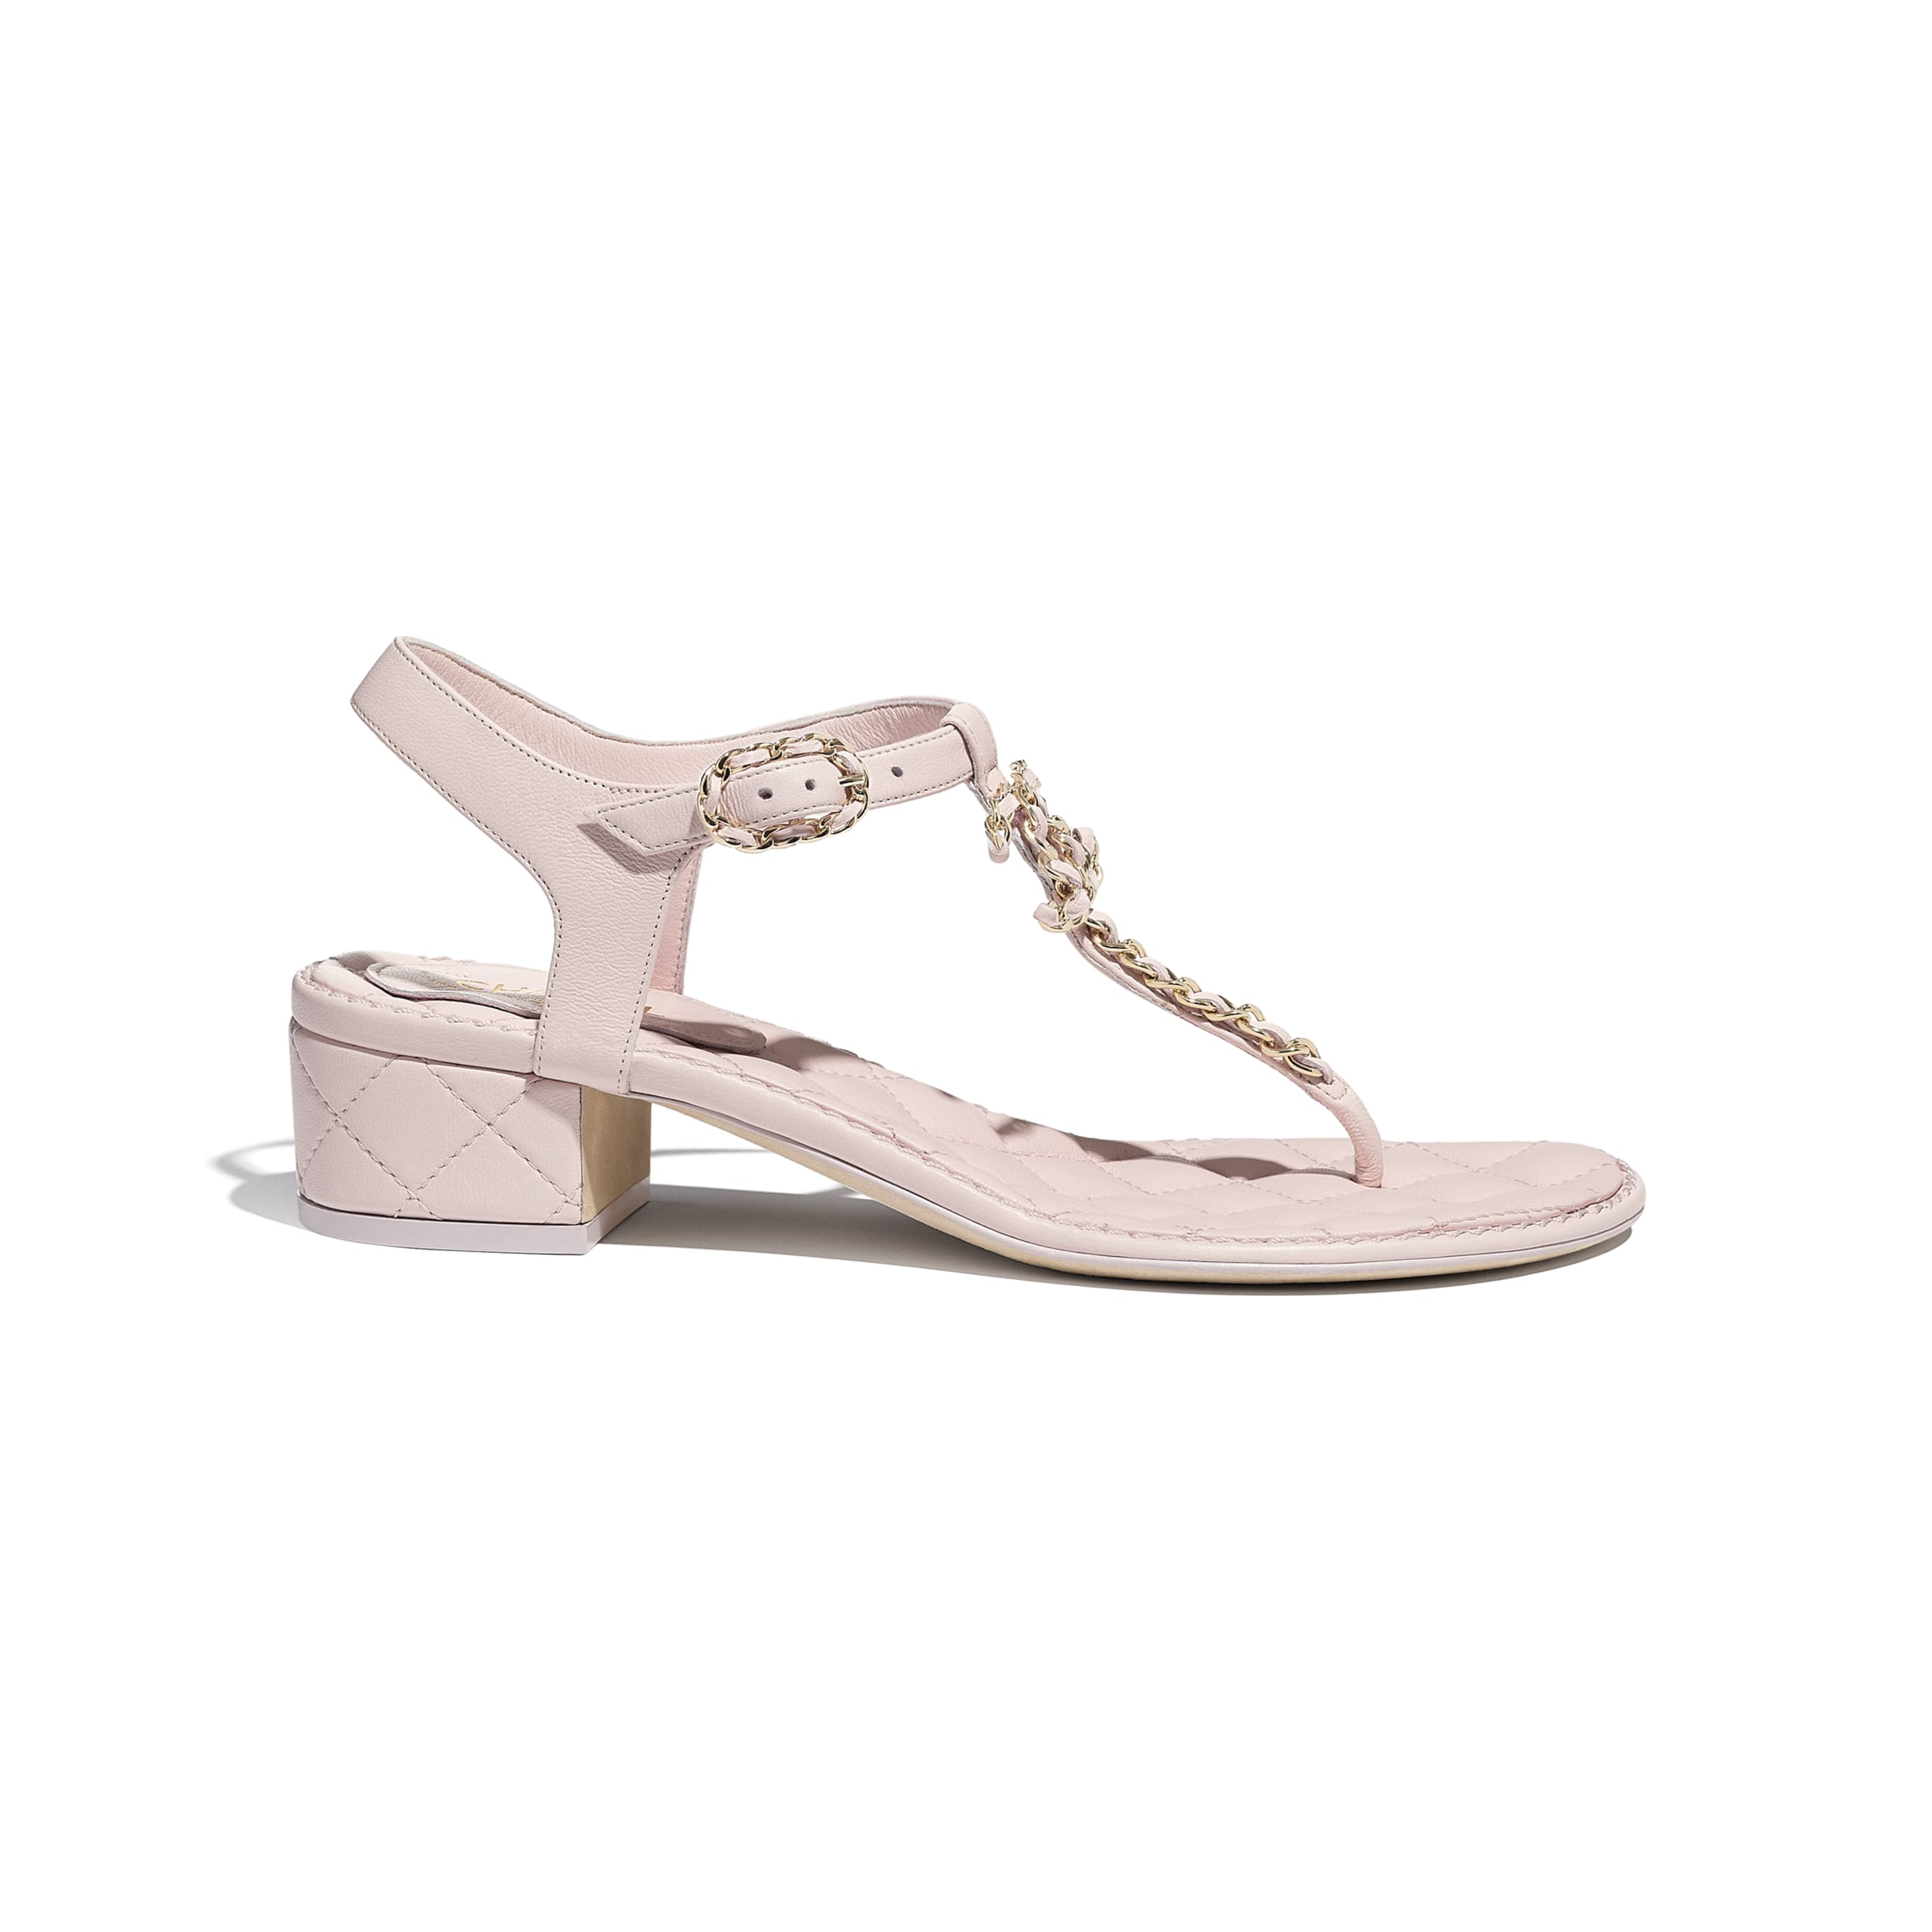 Sandals - Pink - Lambskin - CHANEL - Default view - see standard sized version